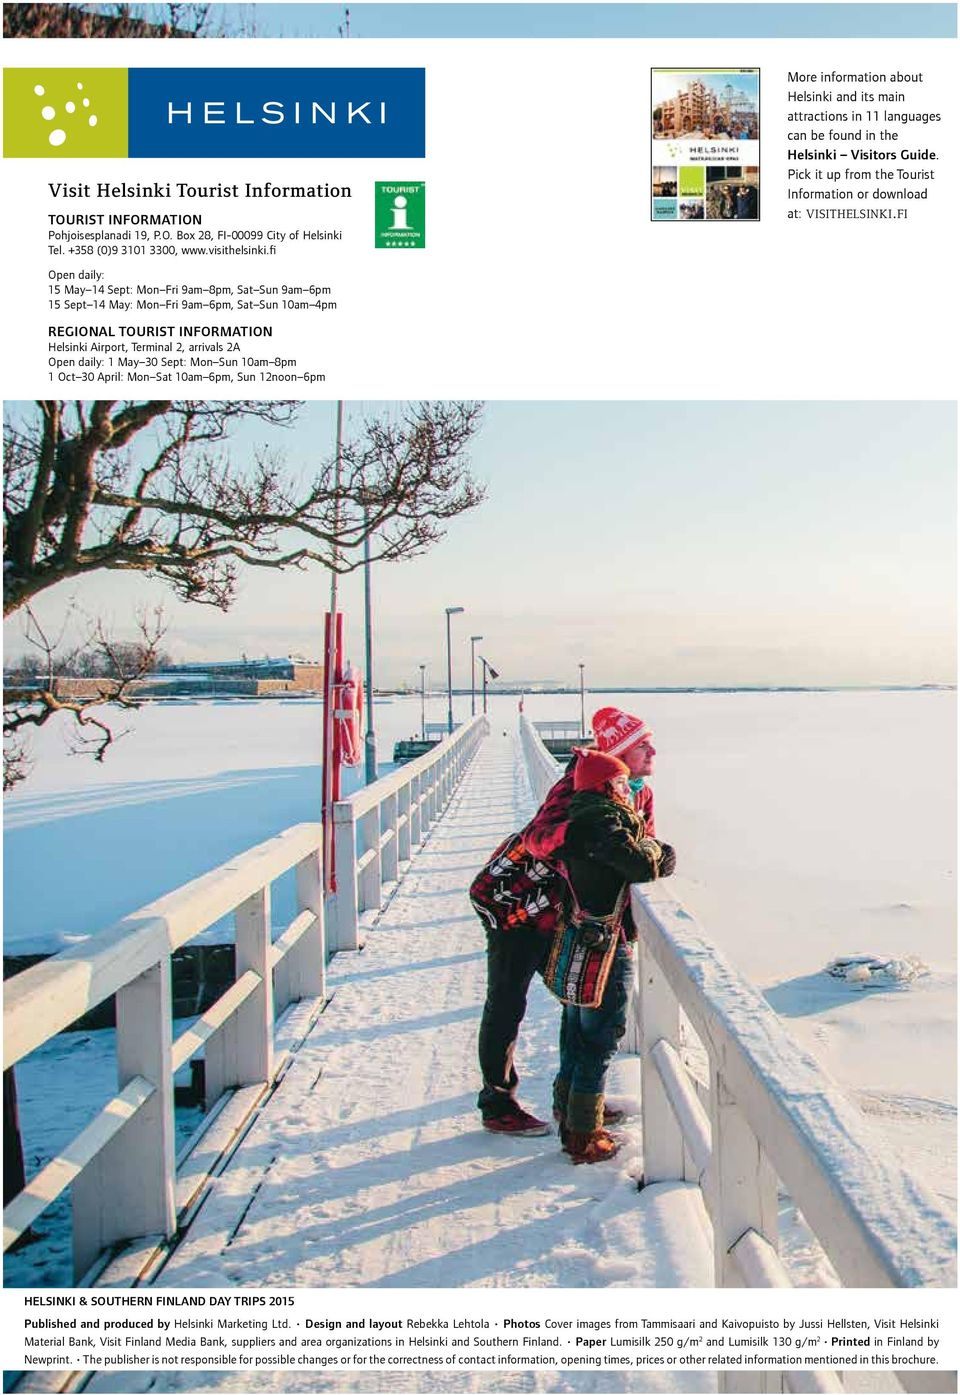 in the Helsinki Visitors Guide. Pick it up from the Tourist Information or download at: visithelsinki.